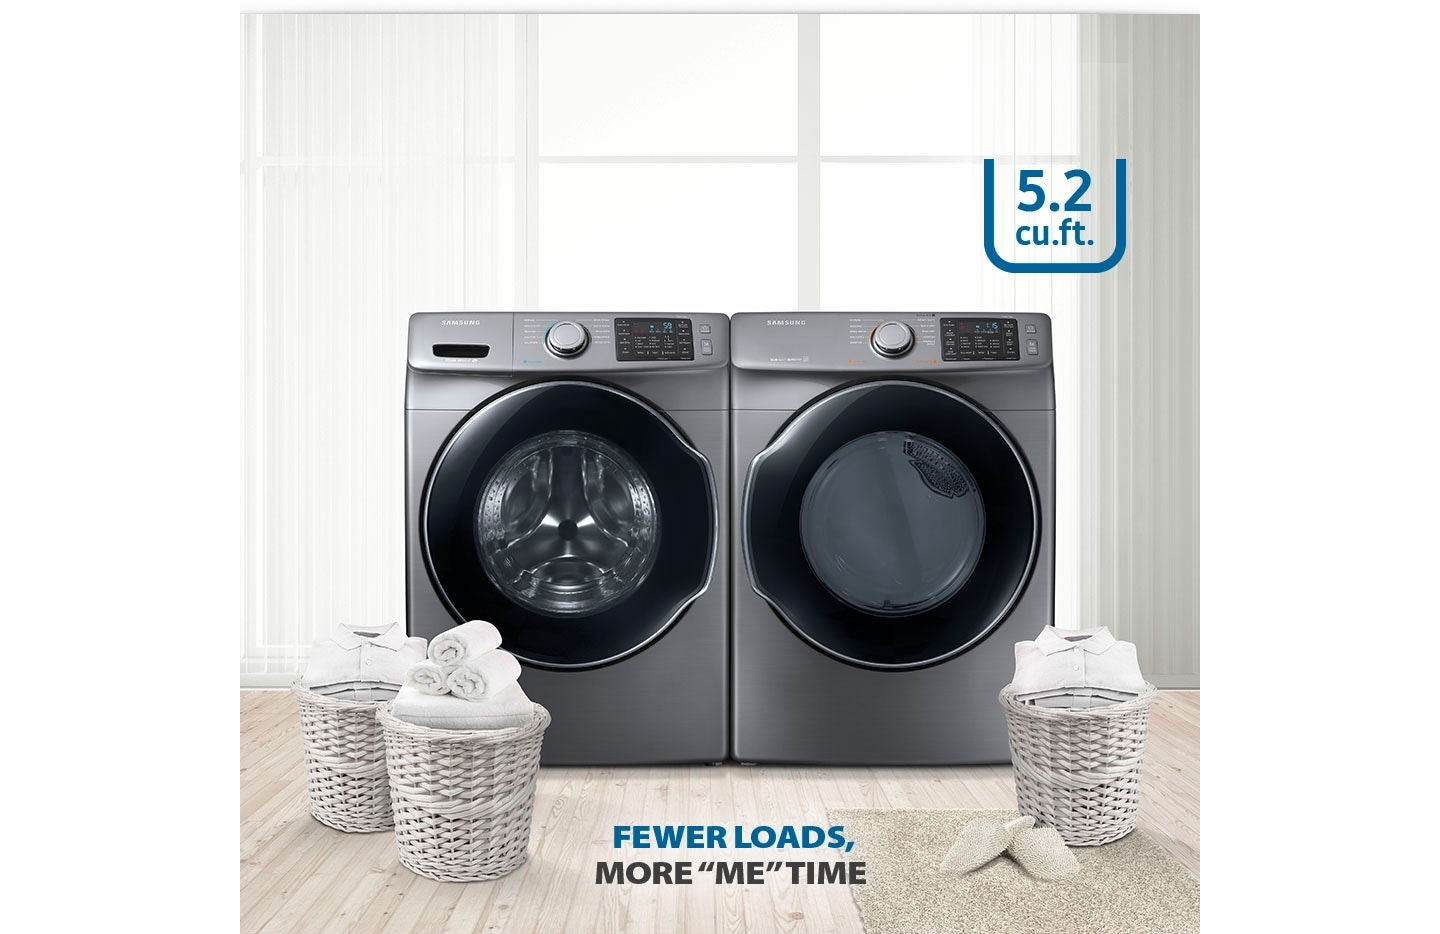 reviews flipboard pedestal sets washing dryer machine washer samsung top xayuk on covoocluy list pedestals and best